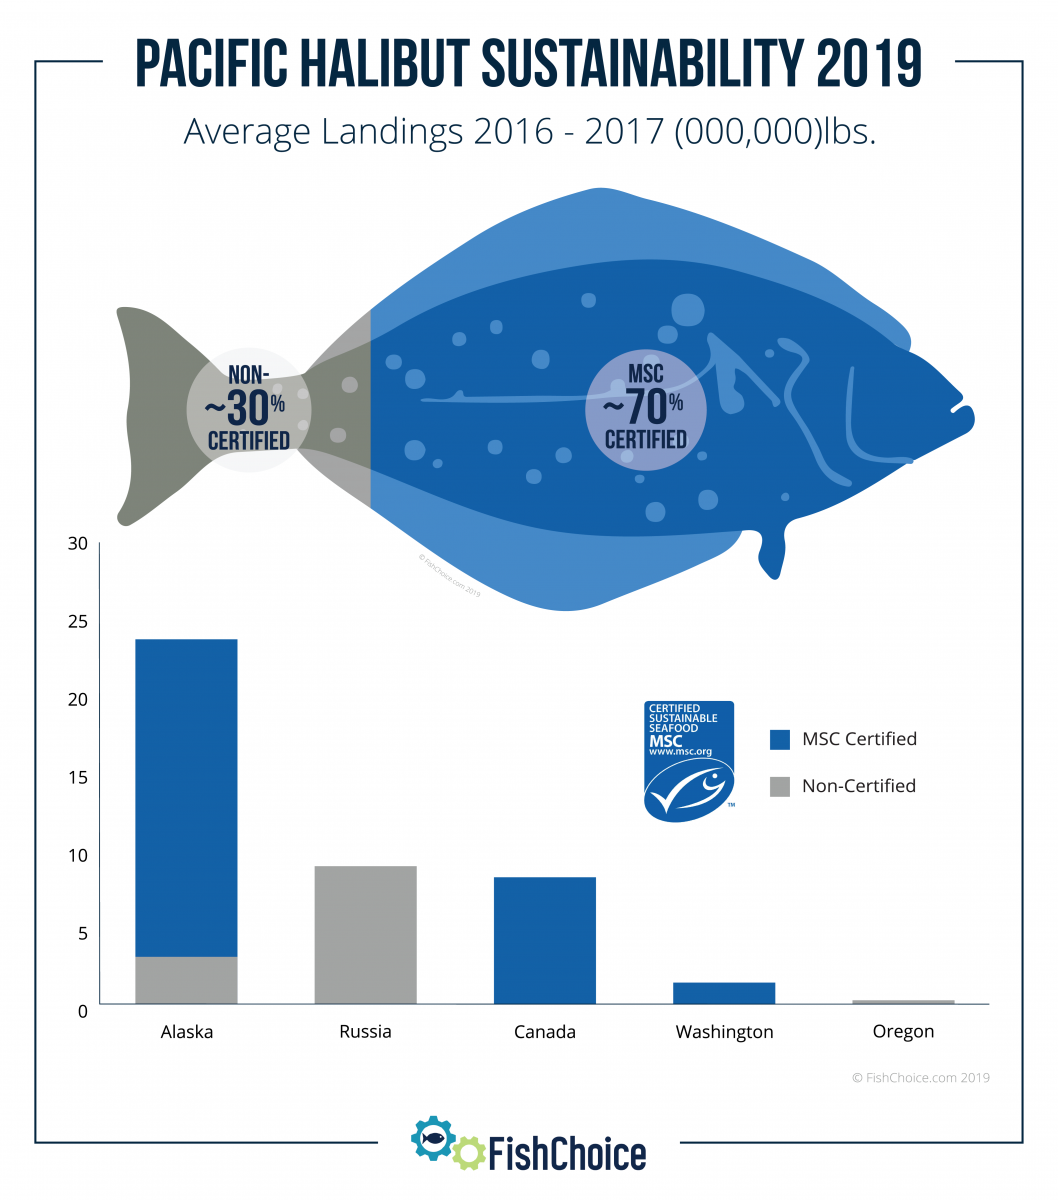 Pacific Halibut Sustainability